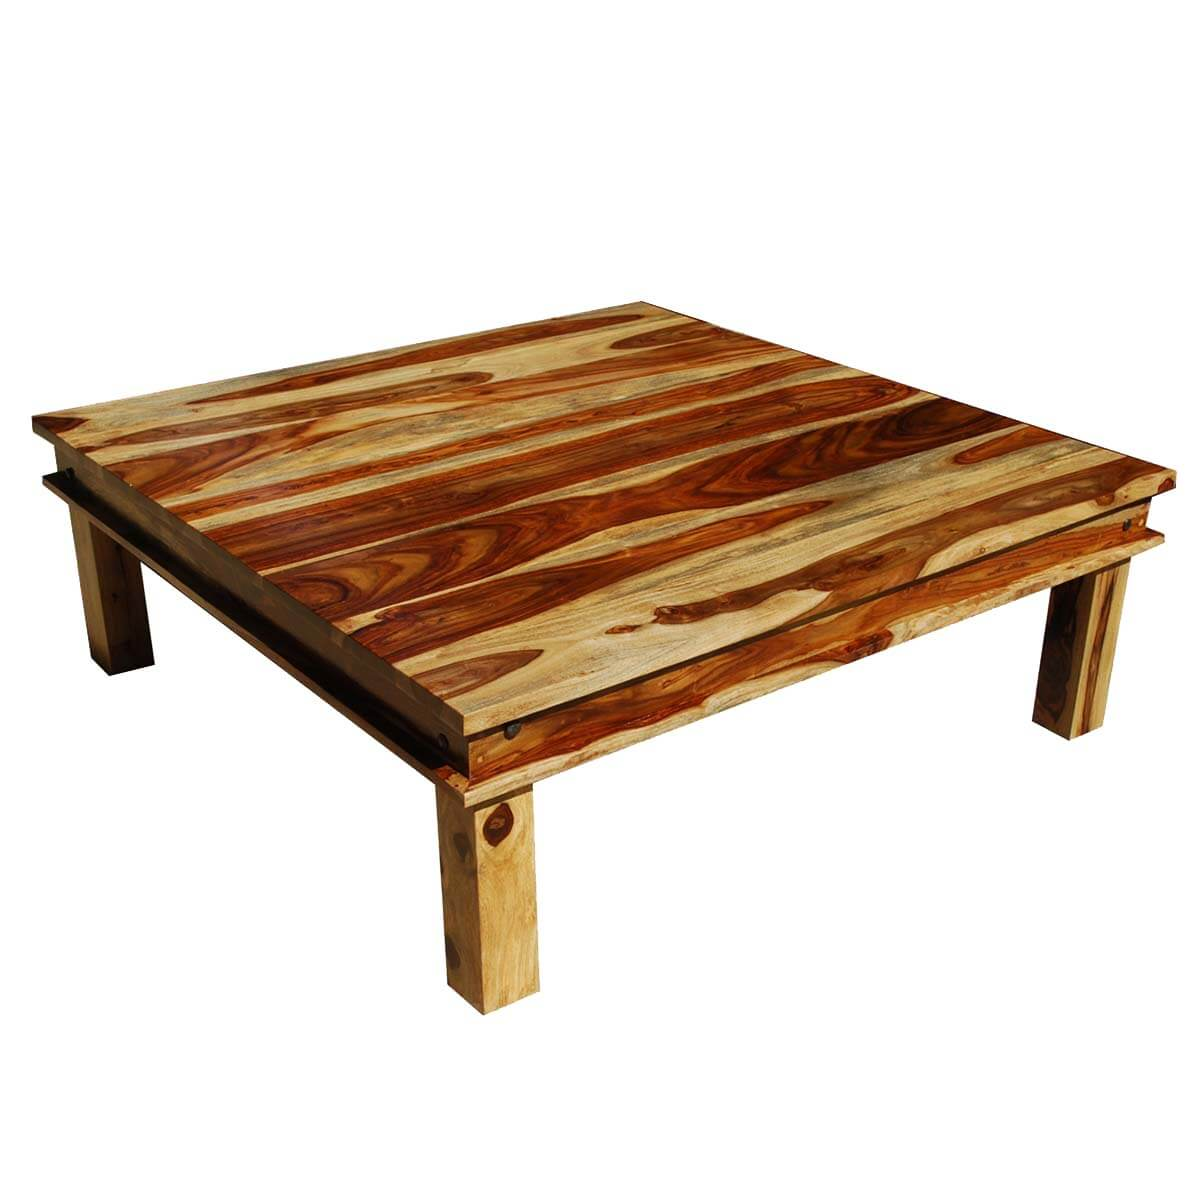 Large square wood rustic coffee table Coffee tables rustic